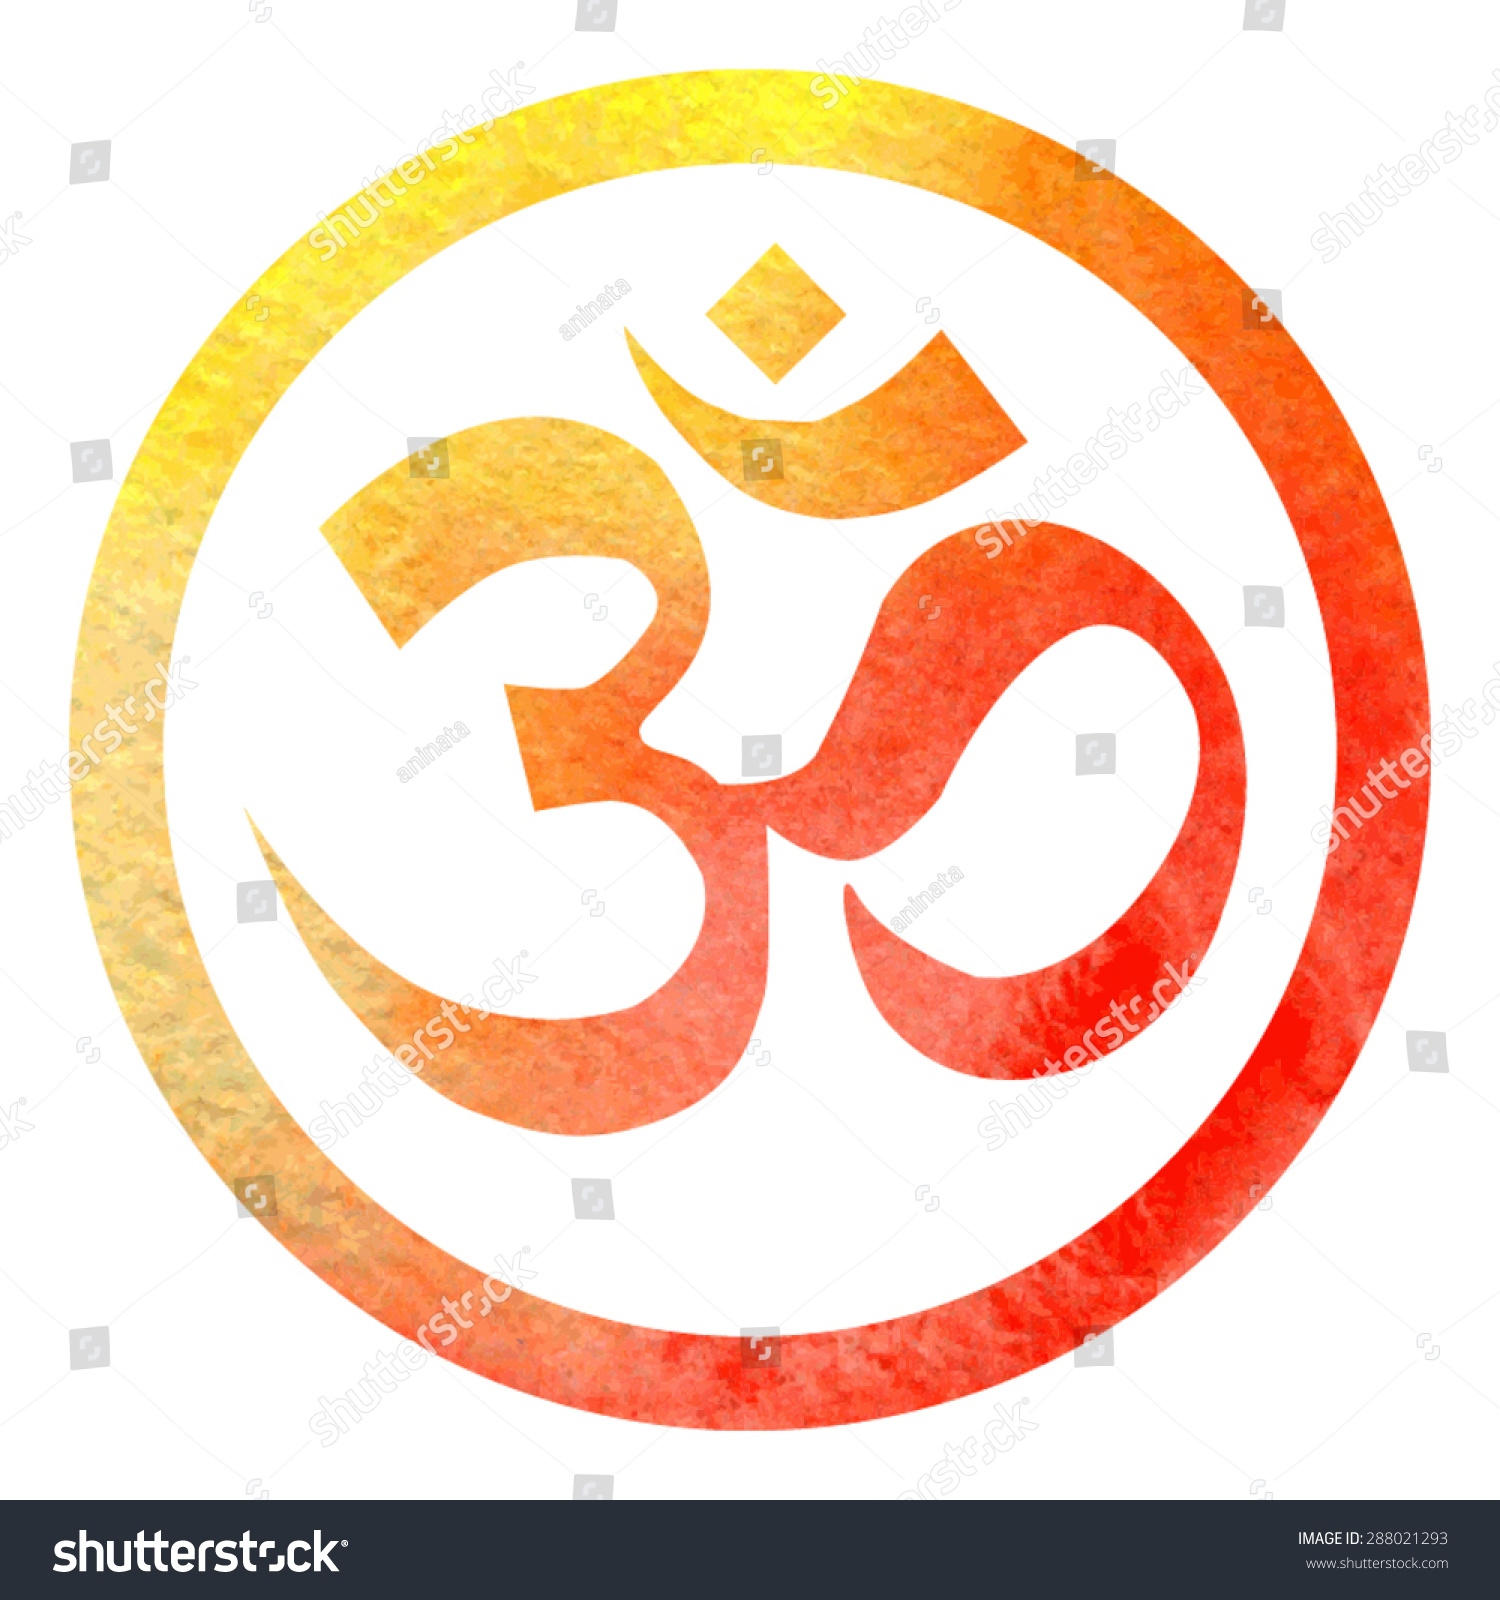 Vector illustration hinduism symbol om bright stock vector vector illustration of hinduism symbol om in bright orange watercolor circle frame with white background biocorpaavc